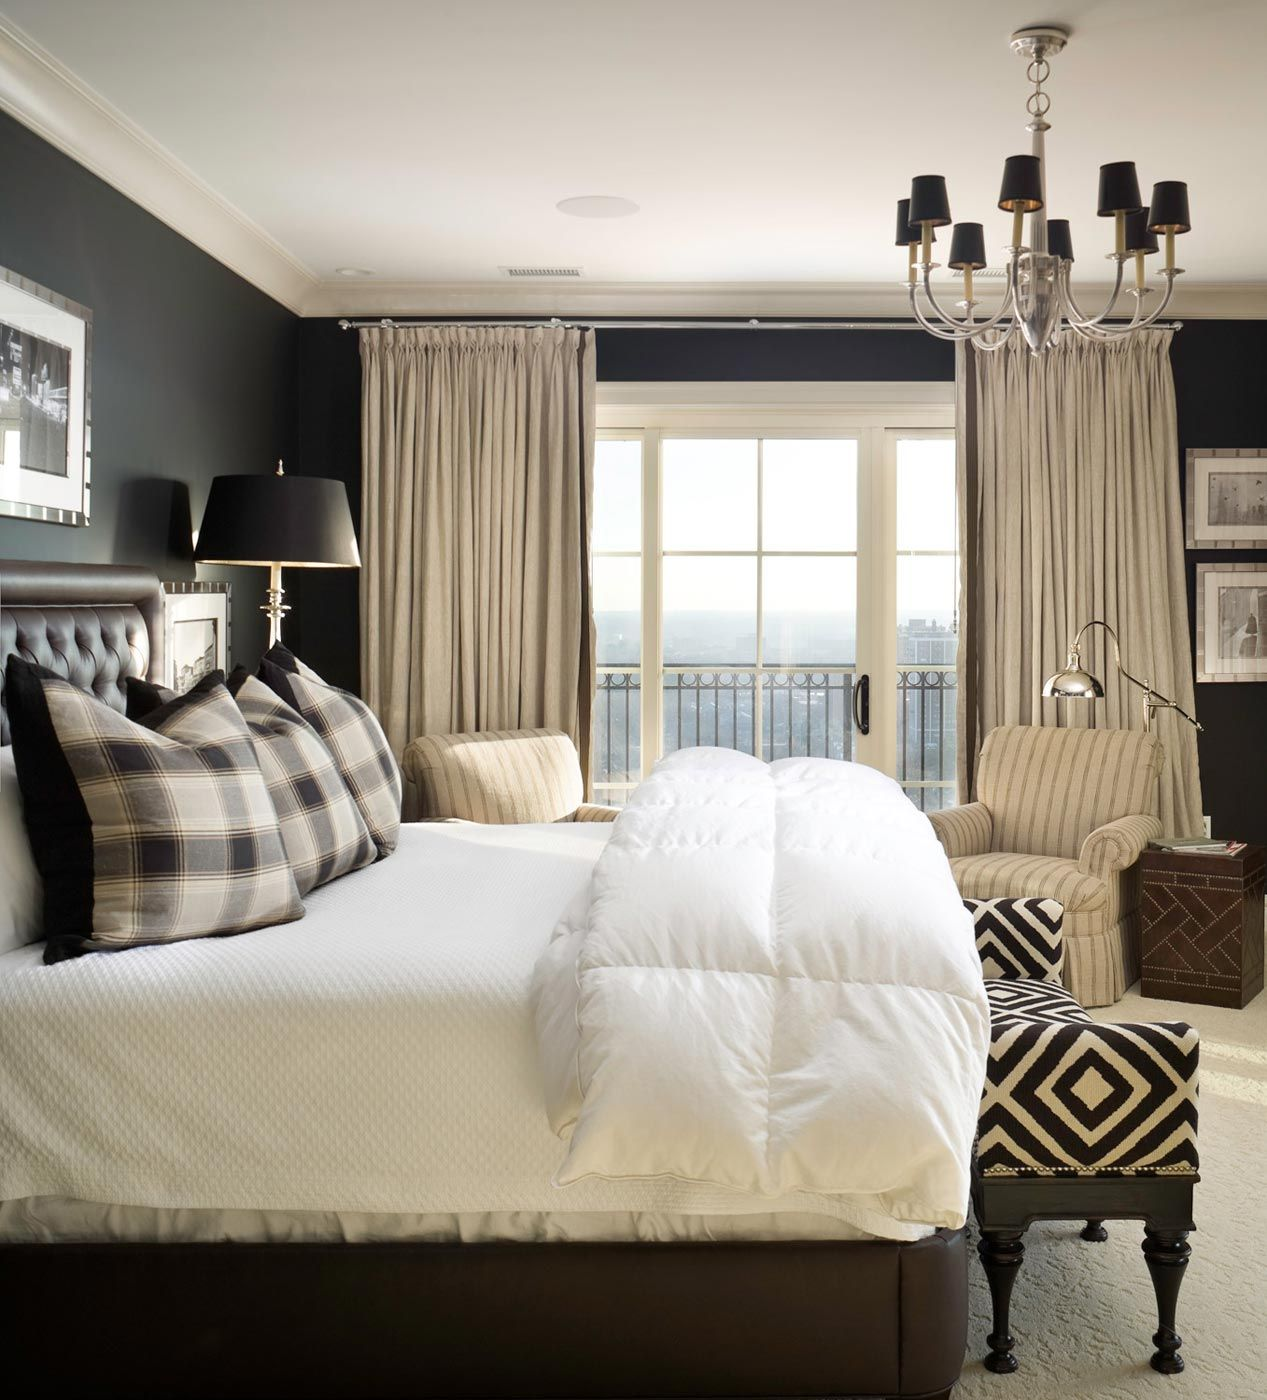 Bedroom With Black Walls, White Bedding And Off-white